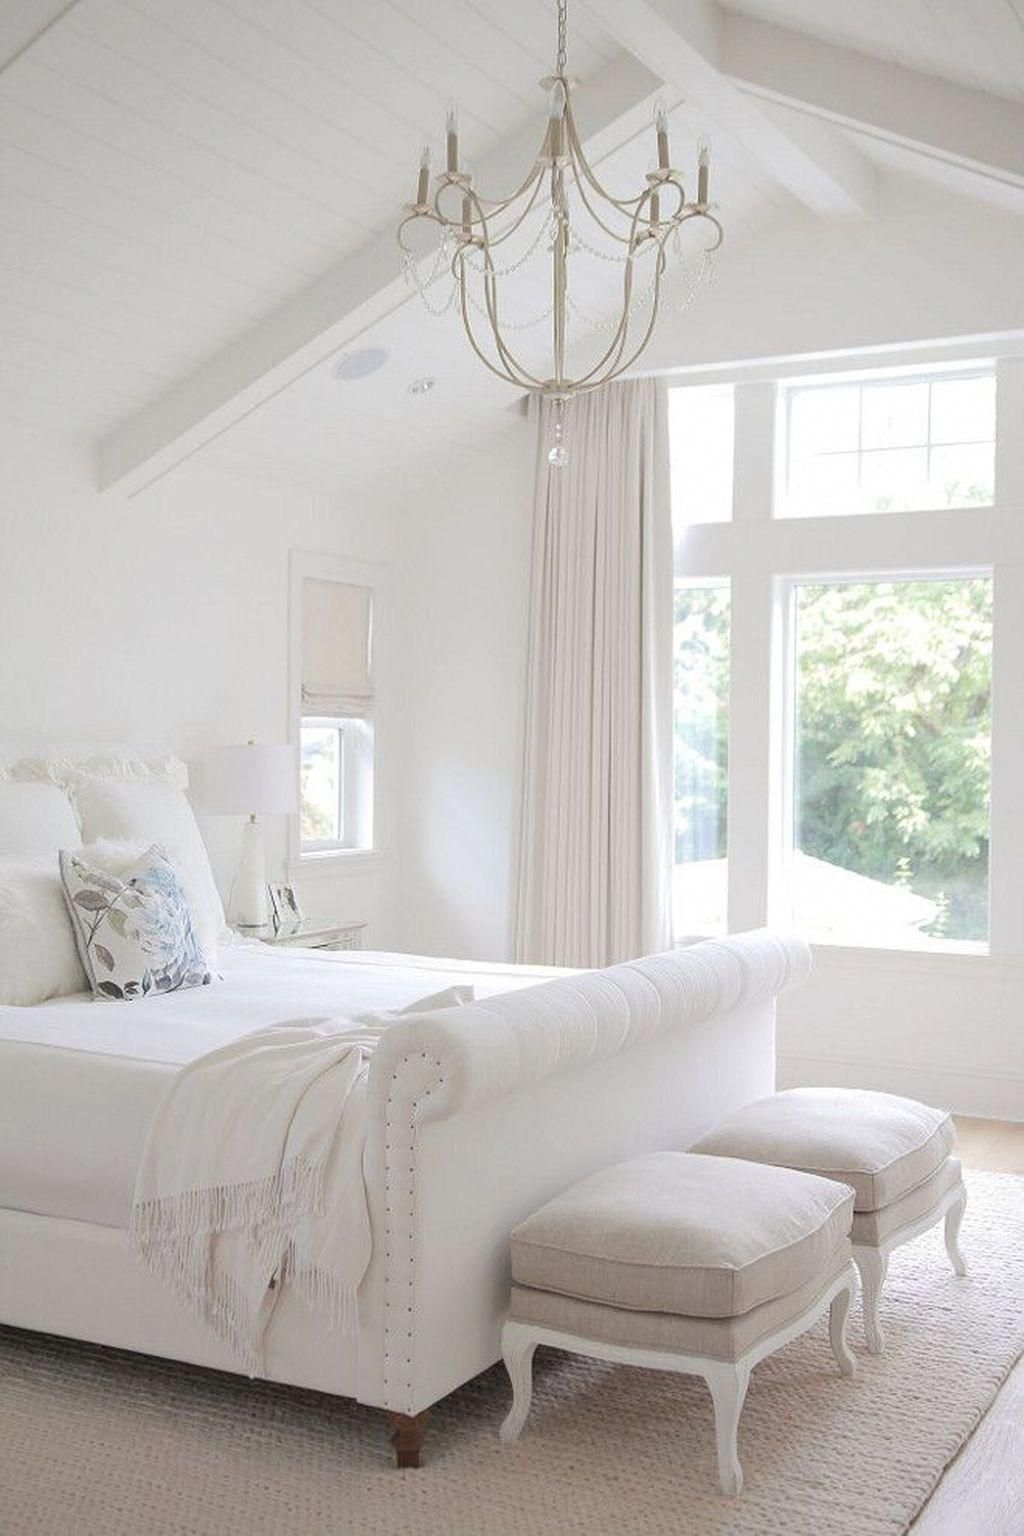 Many people like to have a chandelier in their bedroom